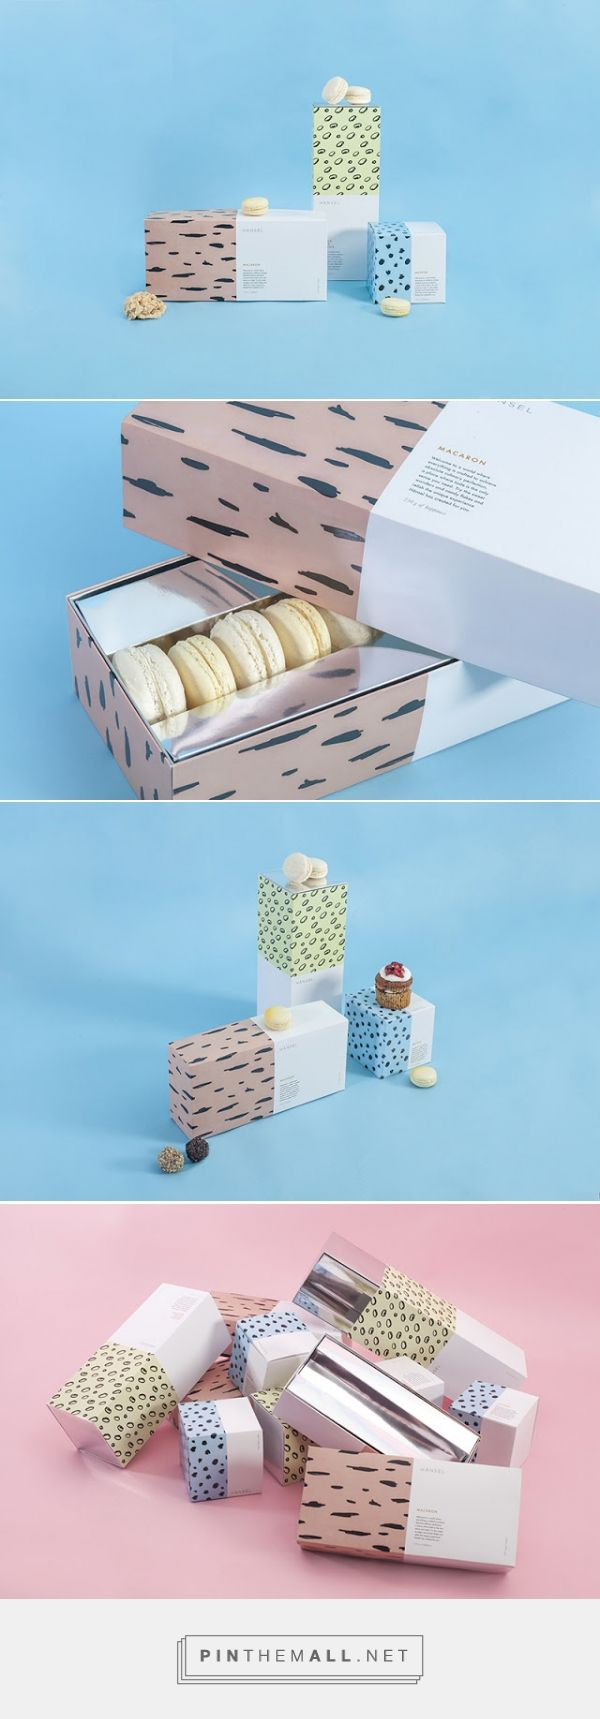 HÄNSEL #Pastry #packaging designed by CHAPTER…